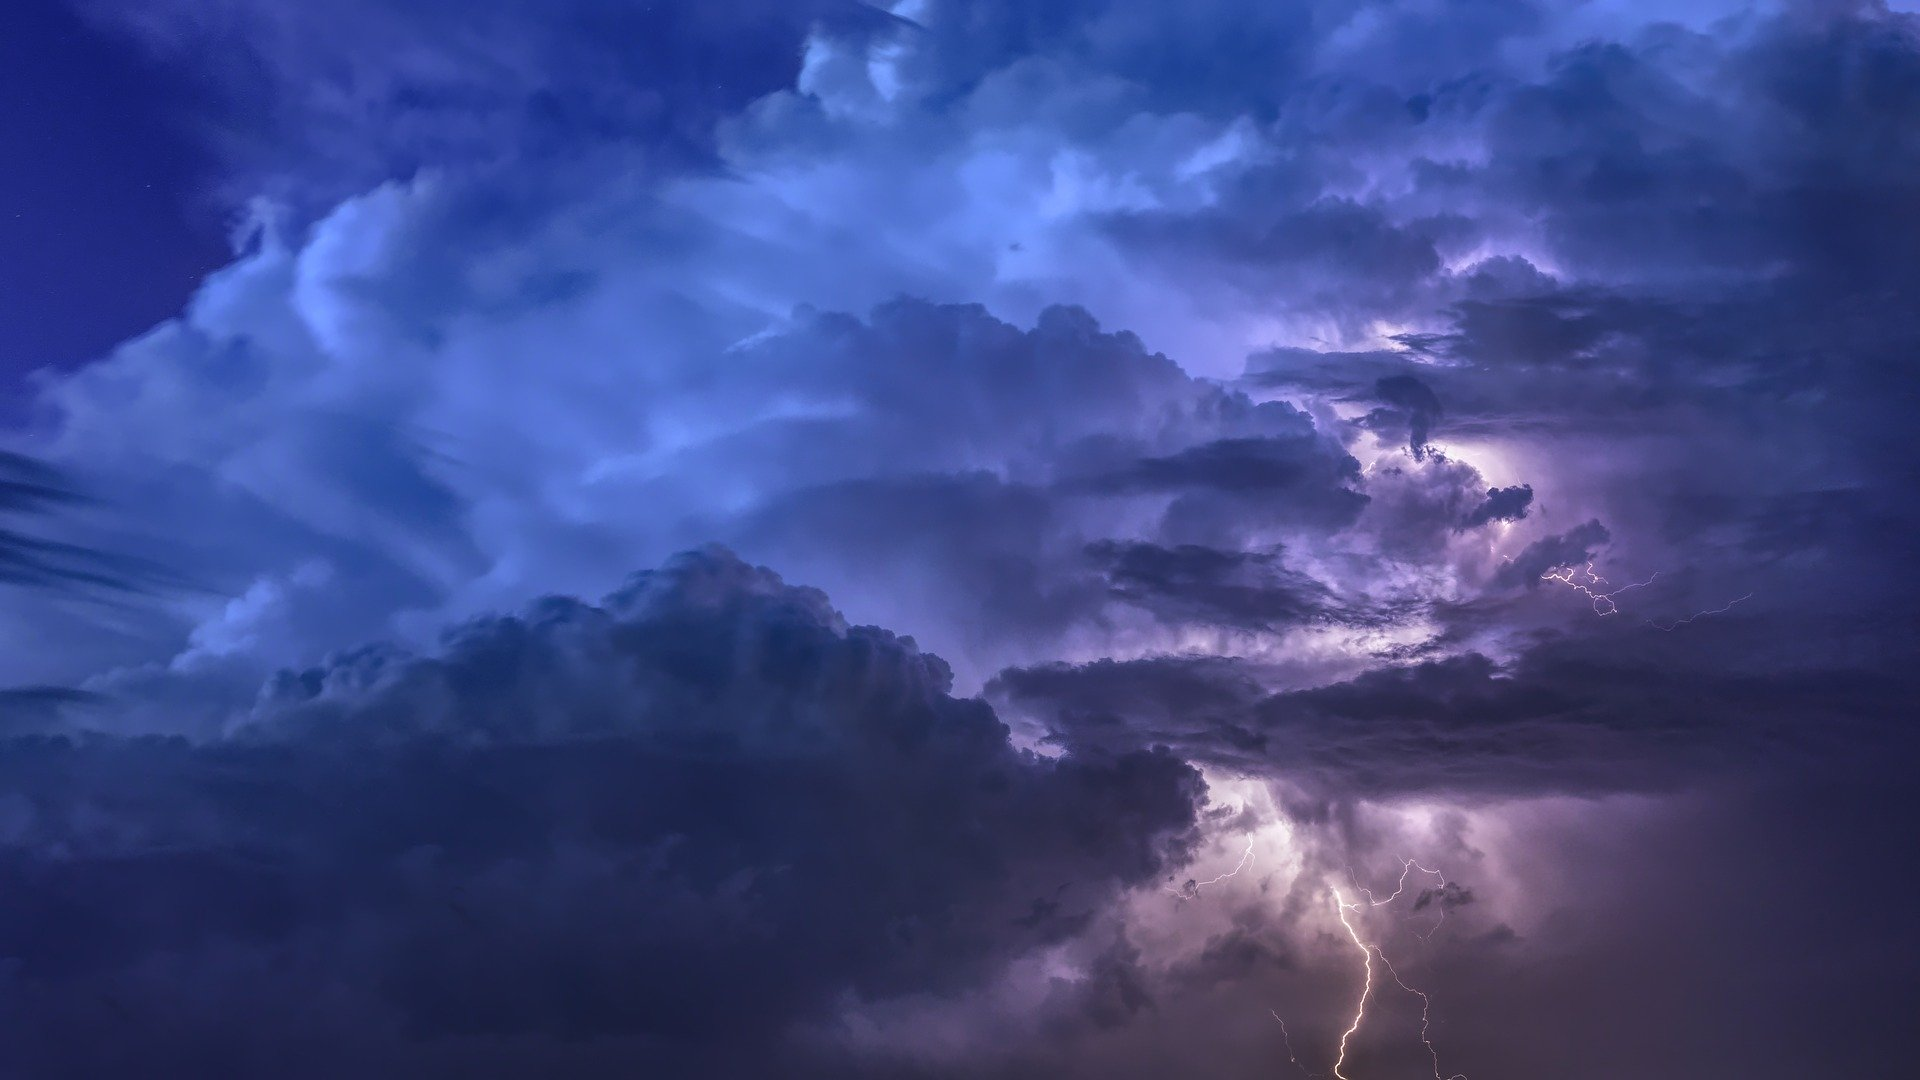 Photo of a thunderstorm at night - blue clouds